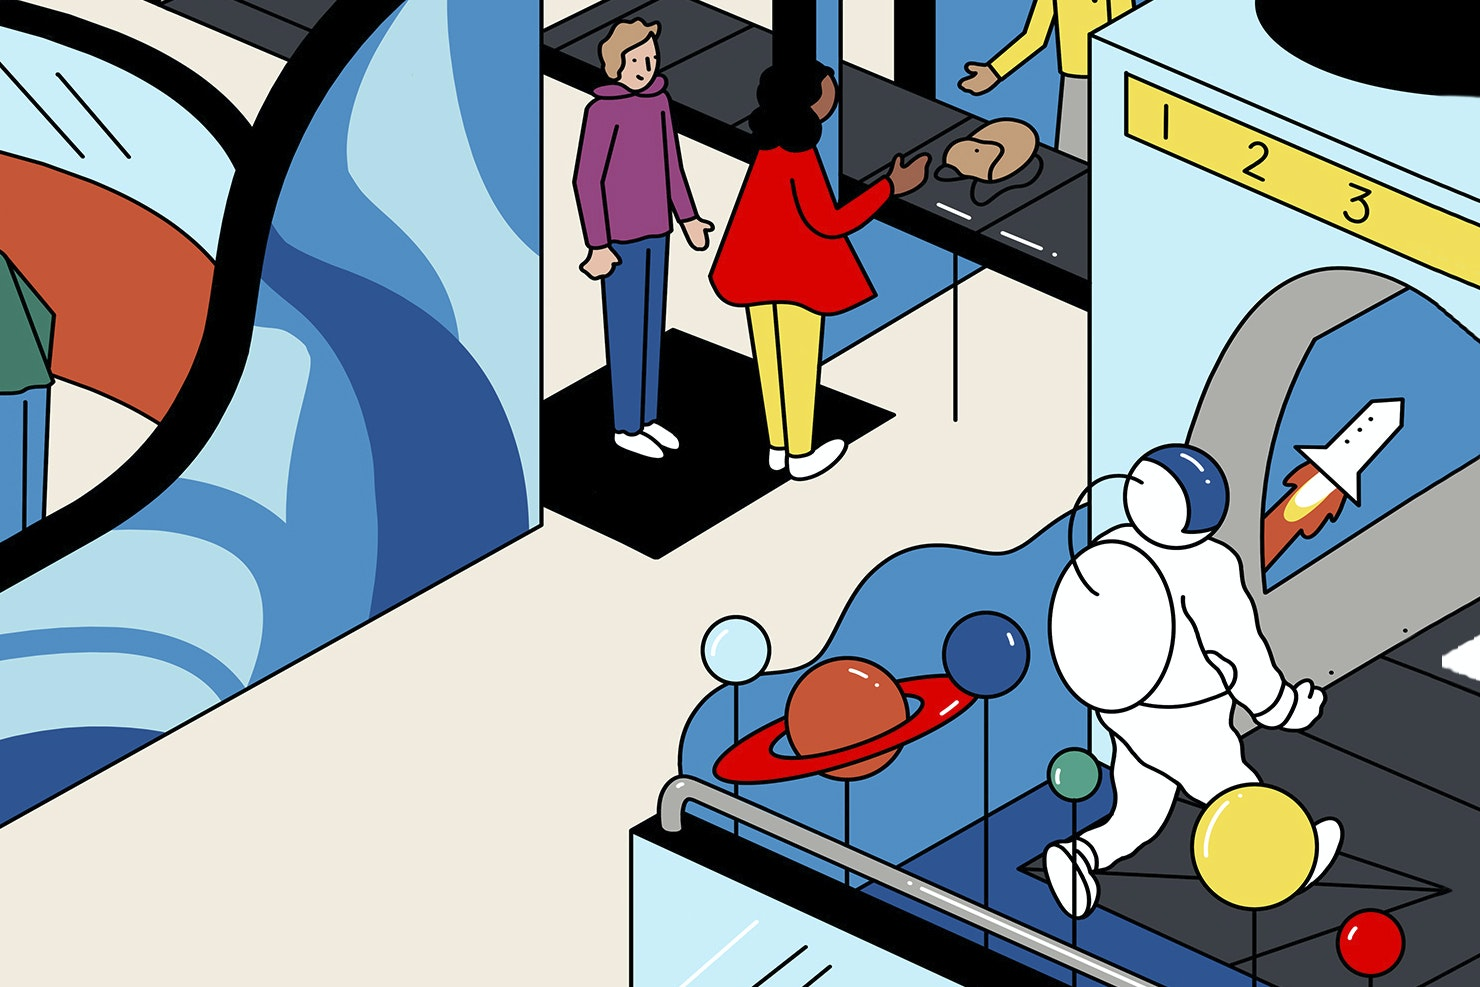 In the future, some airports plan to double as spaceports.